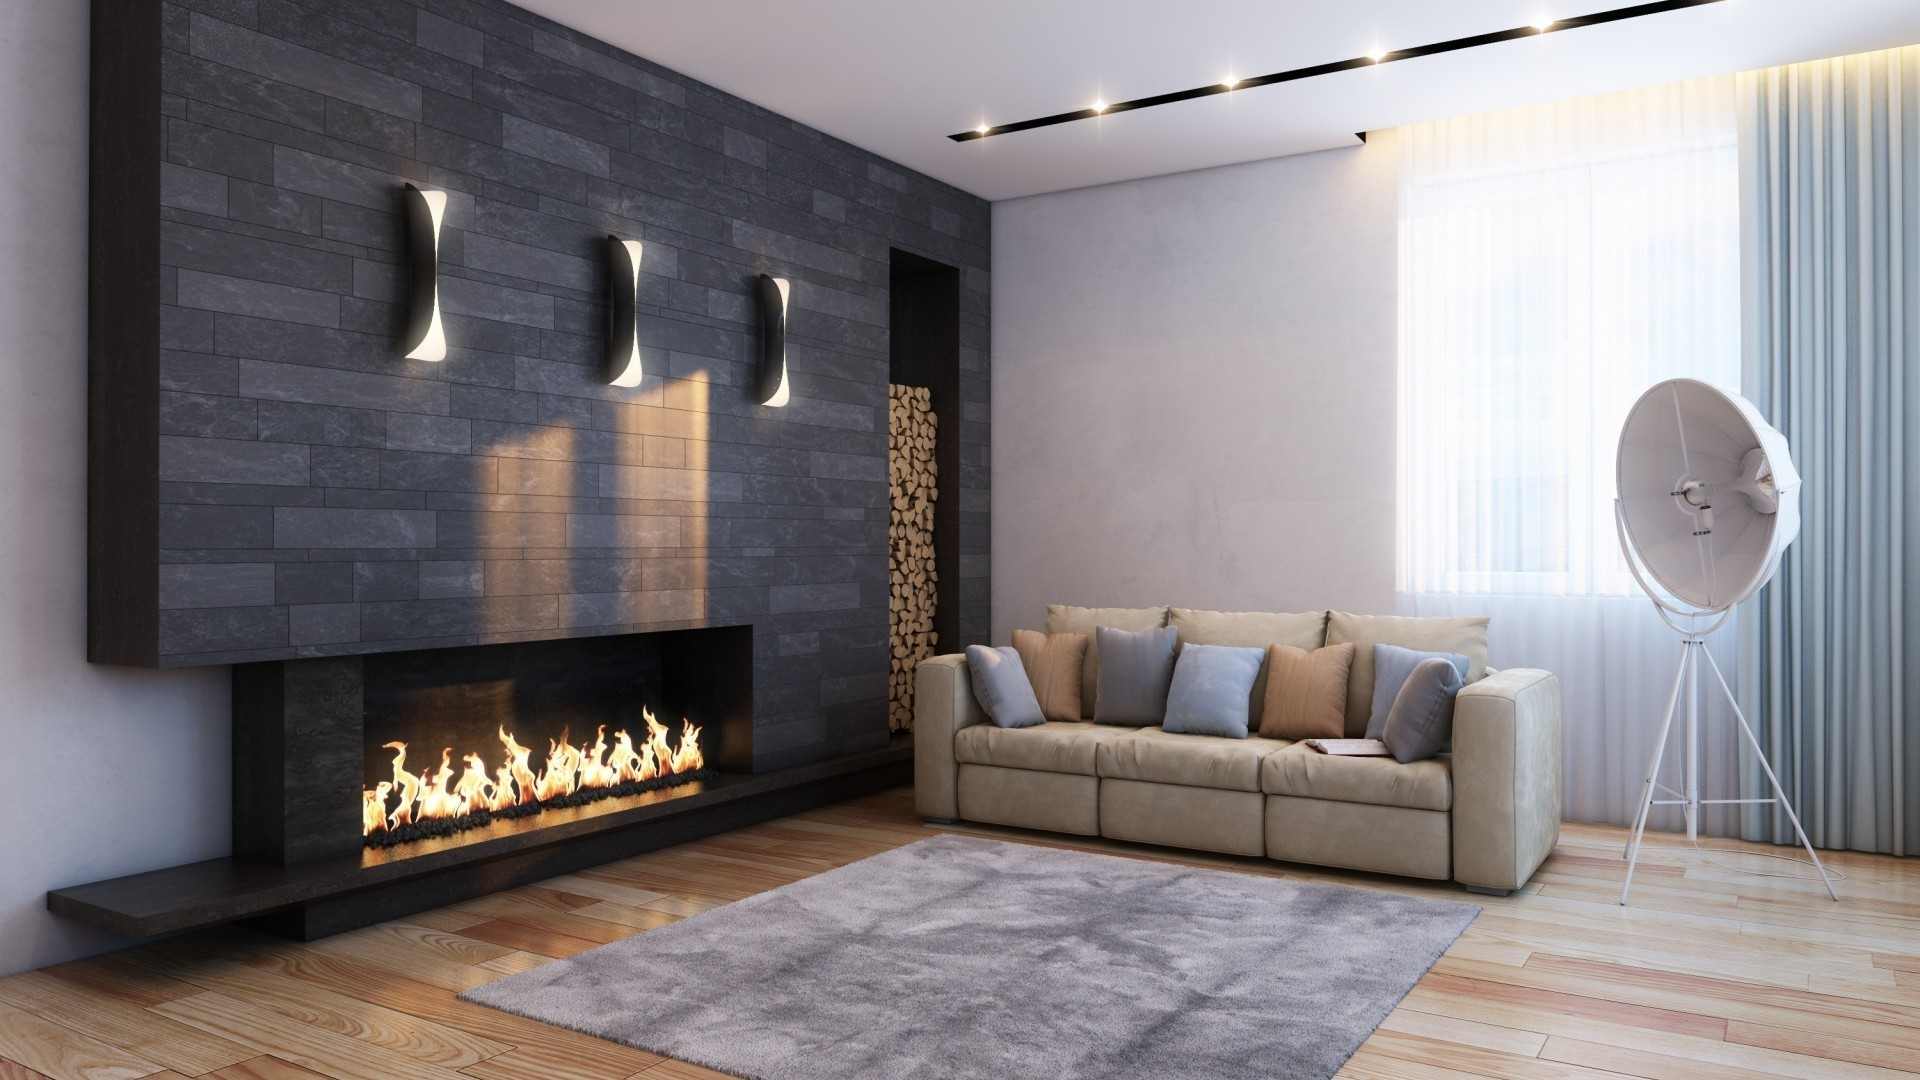 Hall,sofa,artificial fireplace